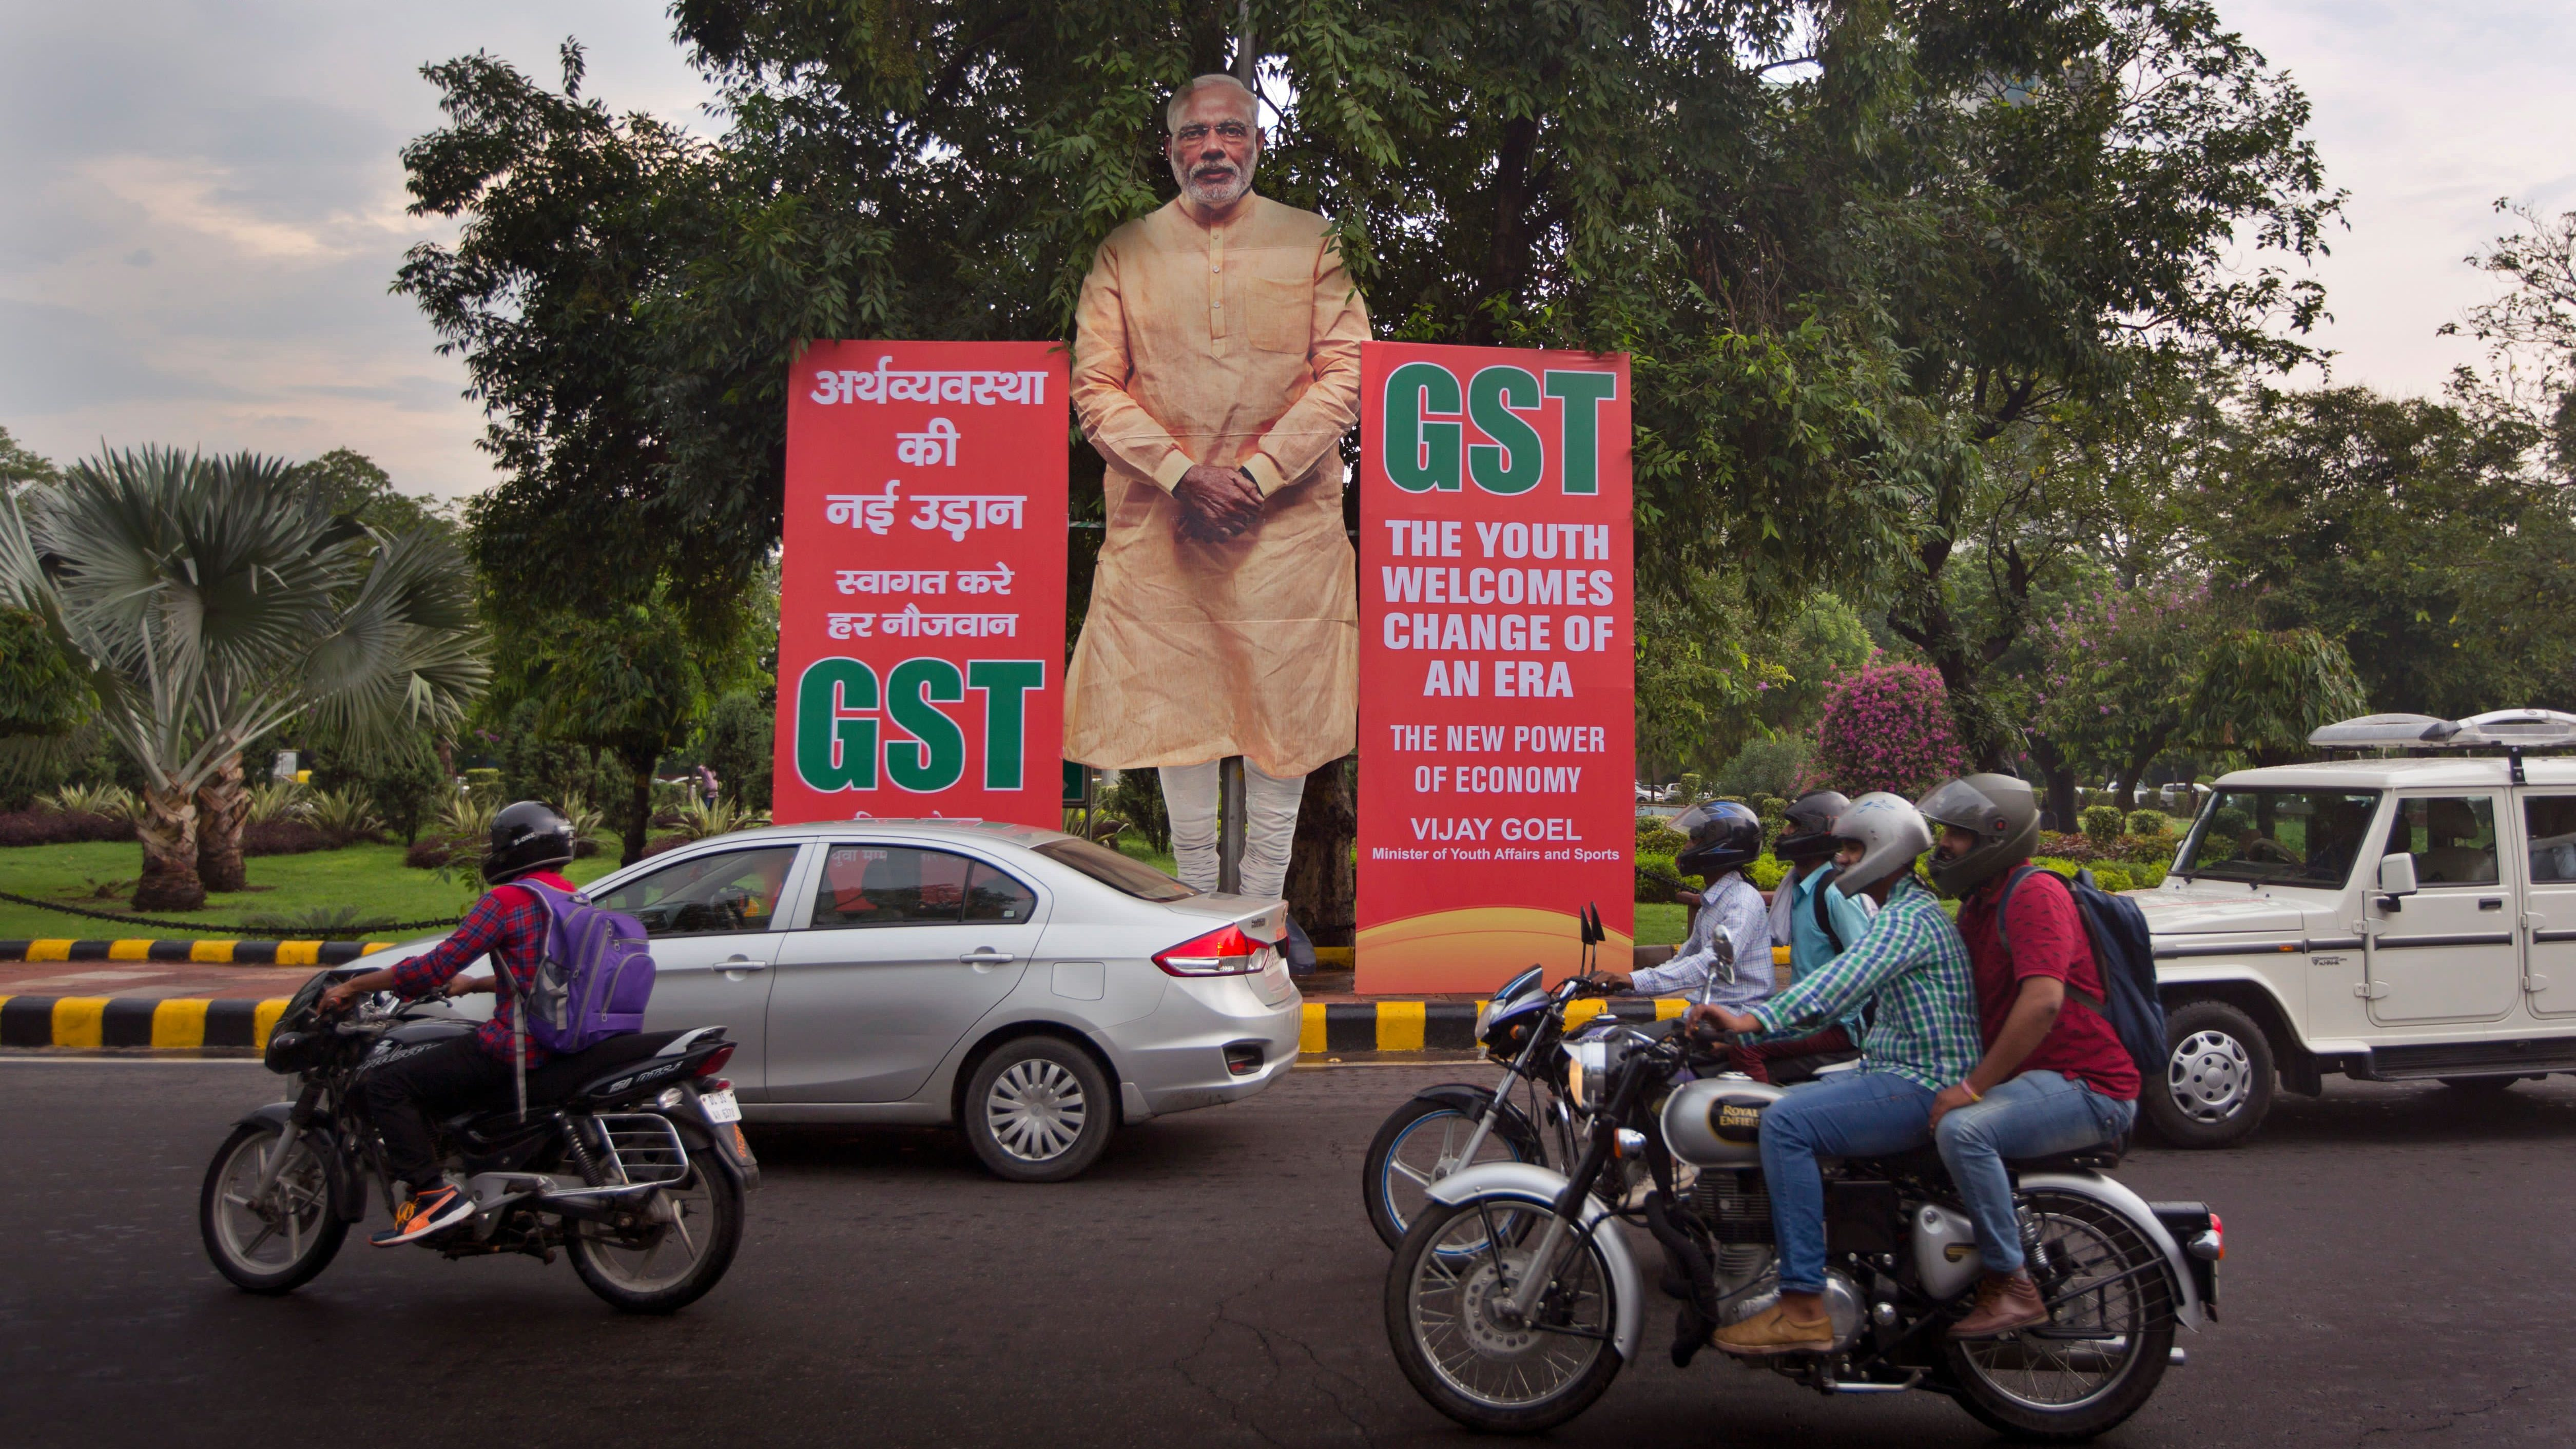 Indian commuters drive past a huge cutout of Indian Prime Minister Narendra Modi next to Goods and Services Tax (GST) banners in New Delhi, India, Friday, June 30, 2017. From July 1 Indian government is introducing a new tax regime called GST, a single, nationwide tax replacing a complicated mix of state and federal taxes and will change the cost of nearly everything people buy. (AP Photo/Manish Swarup)